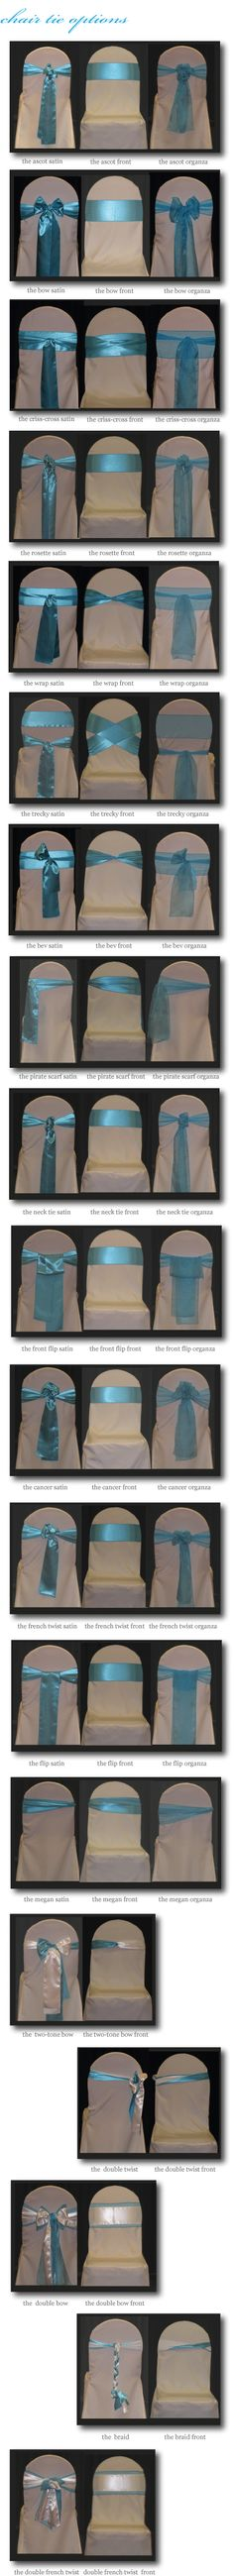 (too many) chair tie options Wedding Chairs, Wedding Reception Decorations, Wedding Table, Diy Wedding, Wedding Ideas, Chair Bows, Chair Sashes, Diy Chair, Hollywood Party